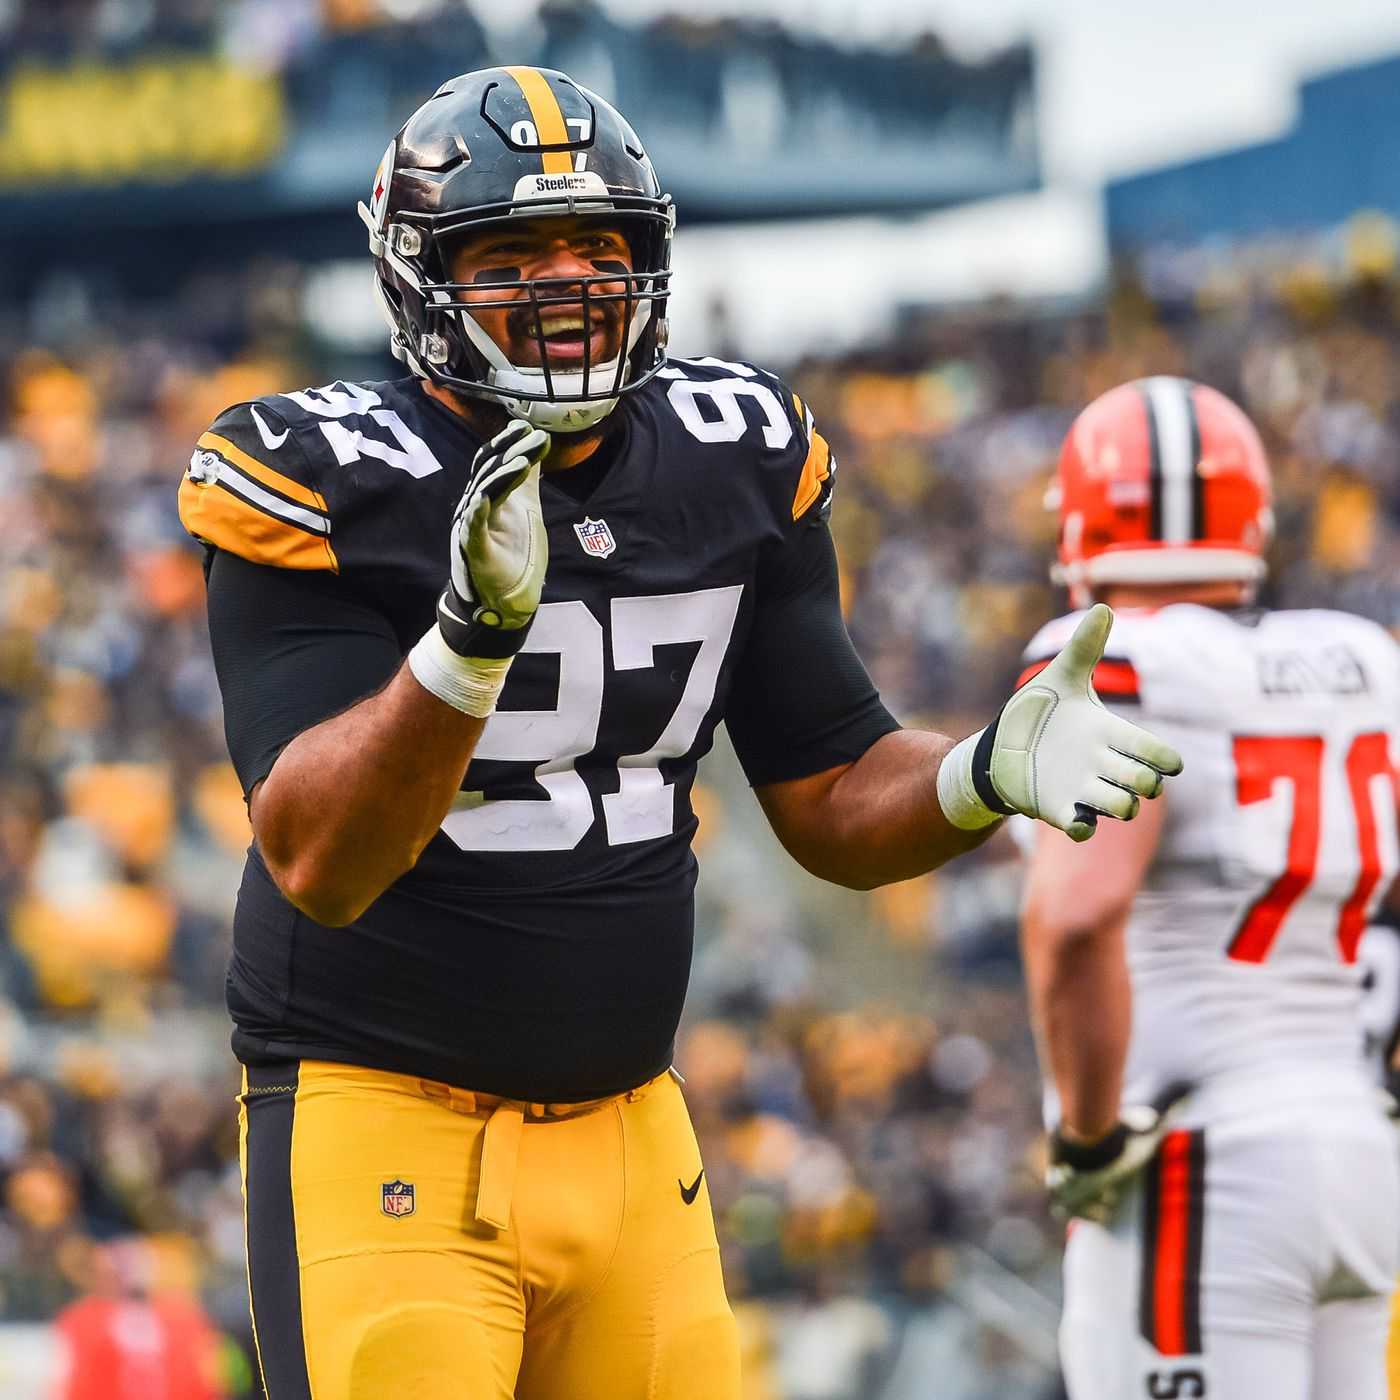 fcccd81f3 Steelers Stock Report: See whose stock is rising, and falling, after the  win over the Browns